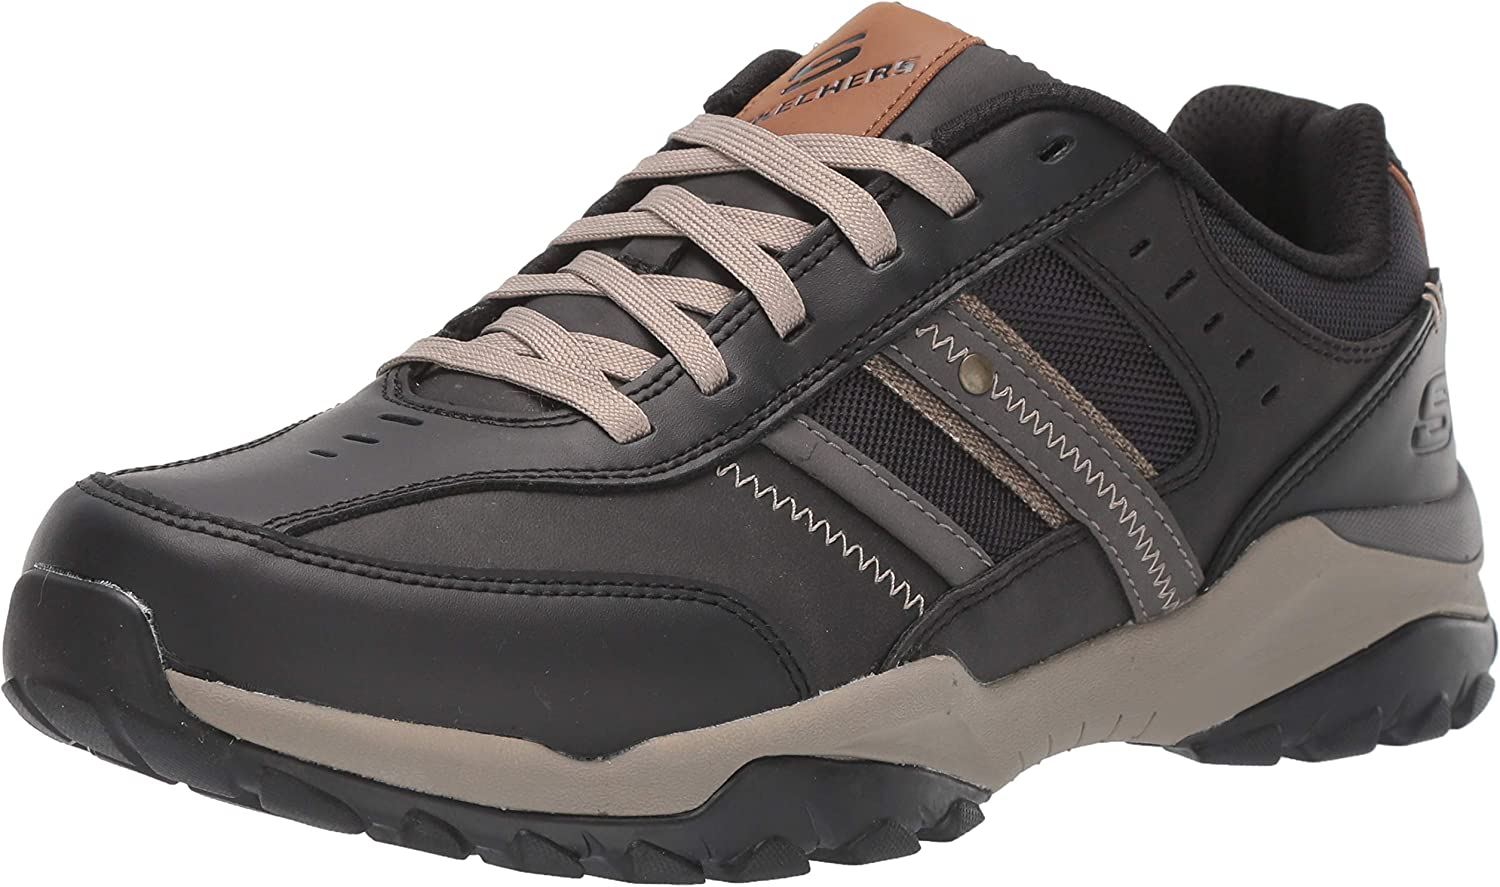 Skechers In stock Men's Nampa Shoe Mail order cheap Service Food